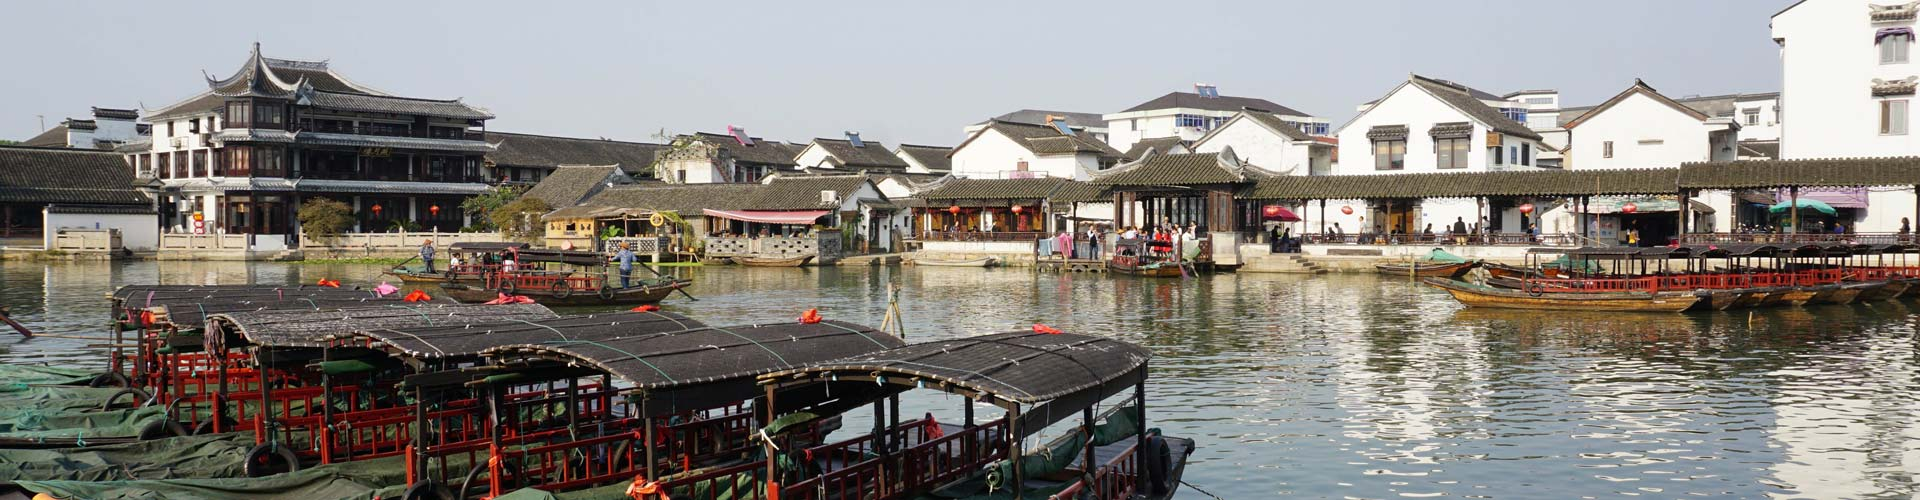 1 Day Zhouzhuang Private Tour (start from Shanghai, round trip)